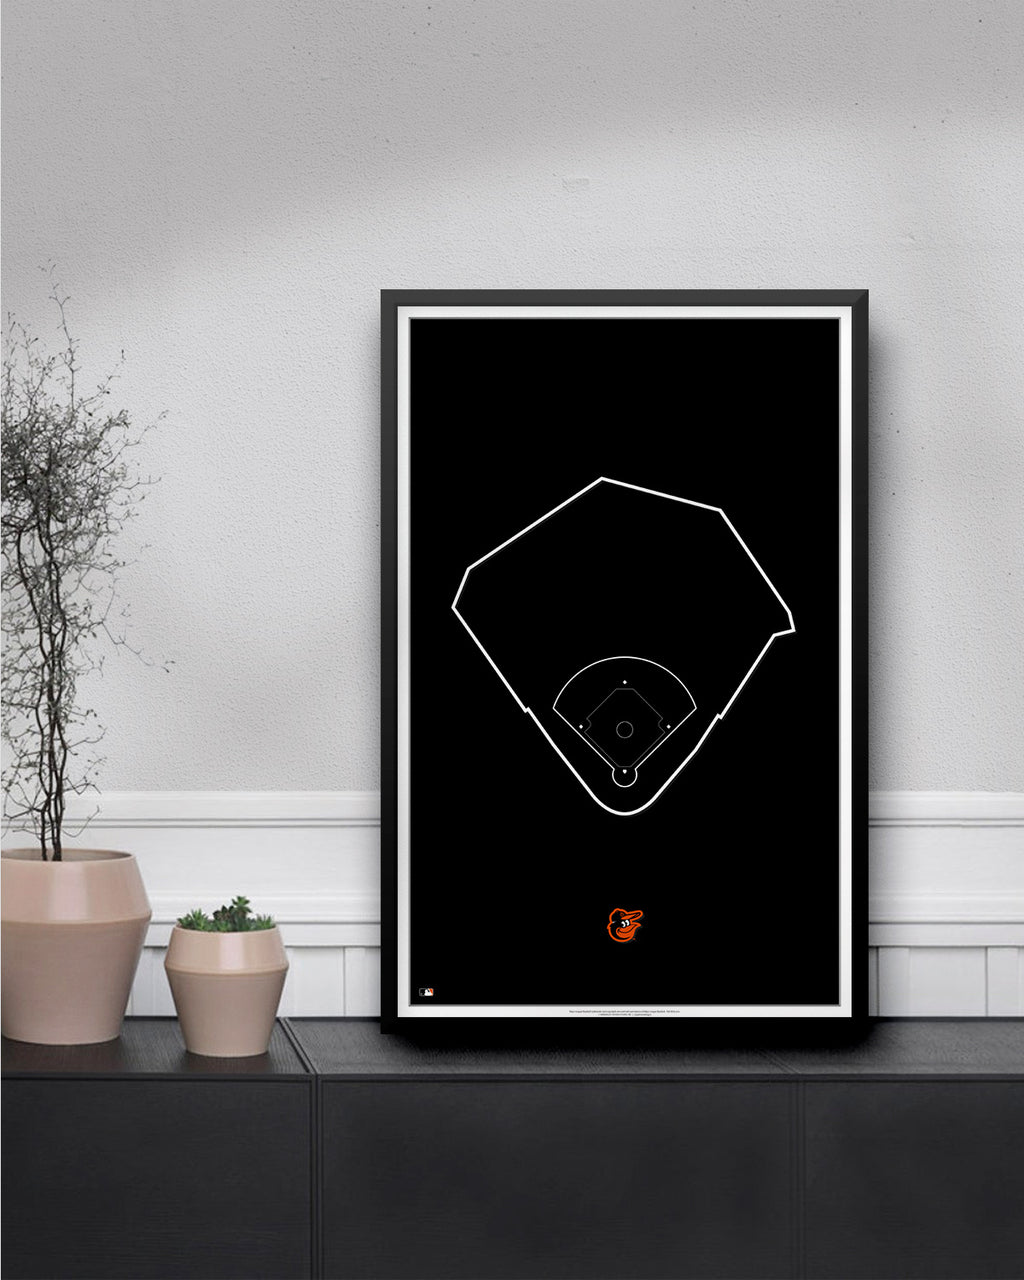 MLB Outline Ballpark - Camden Yards Baltimore Orioles - S Preston